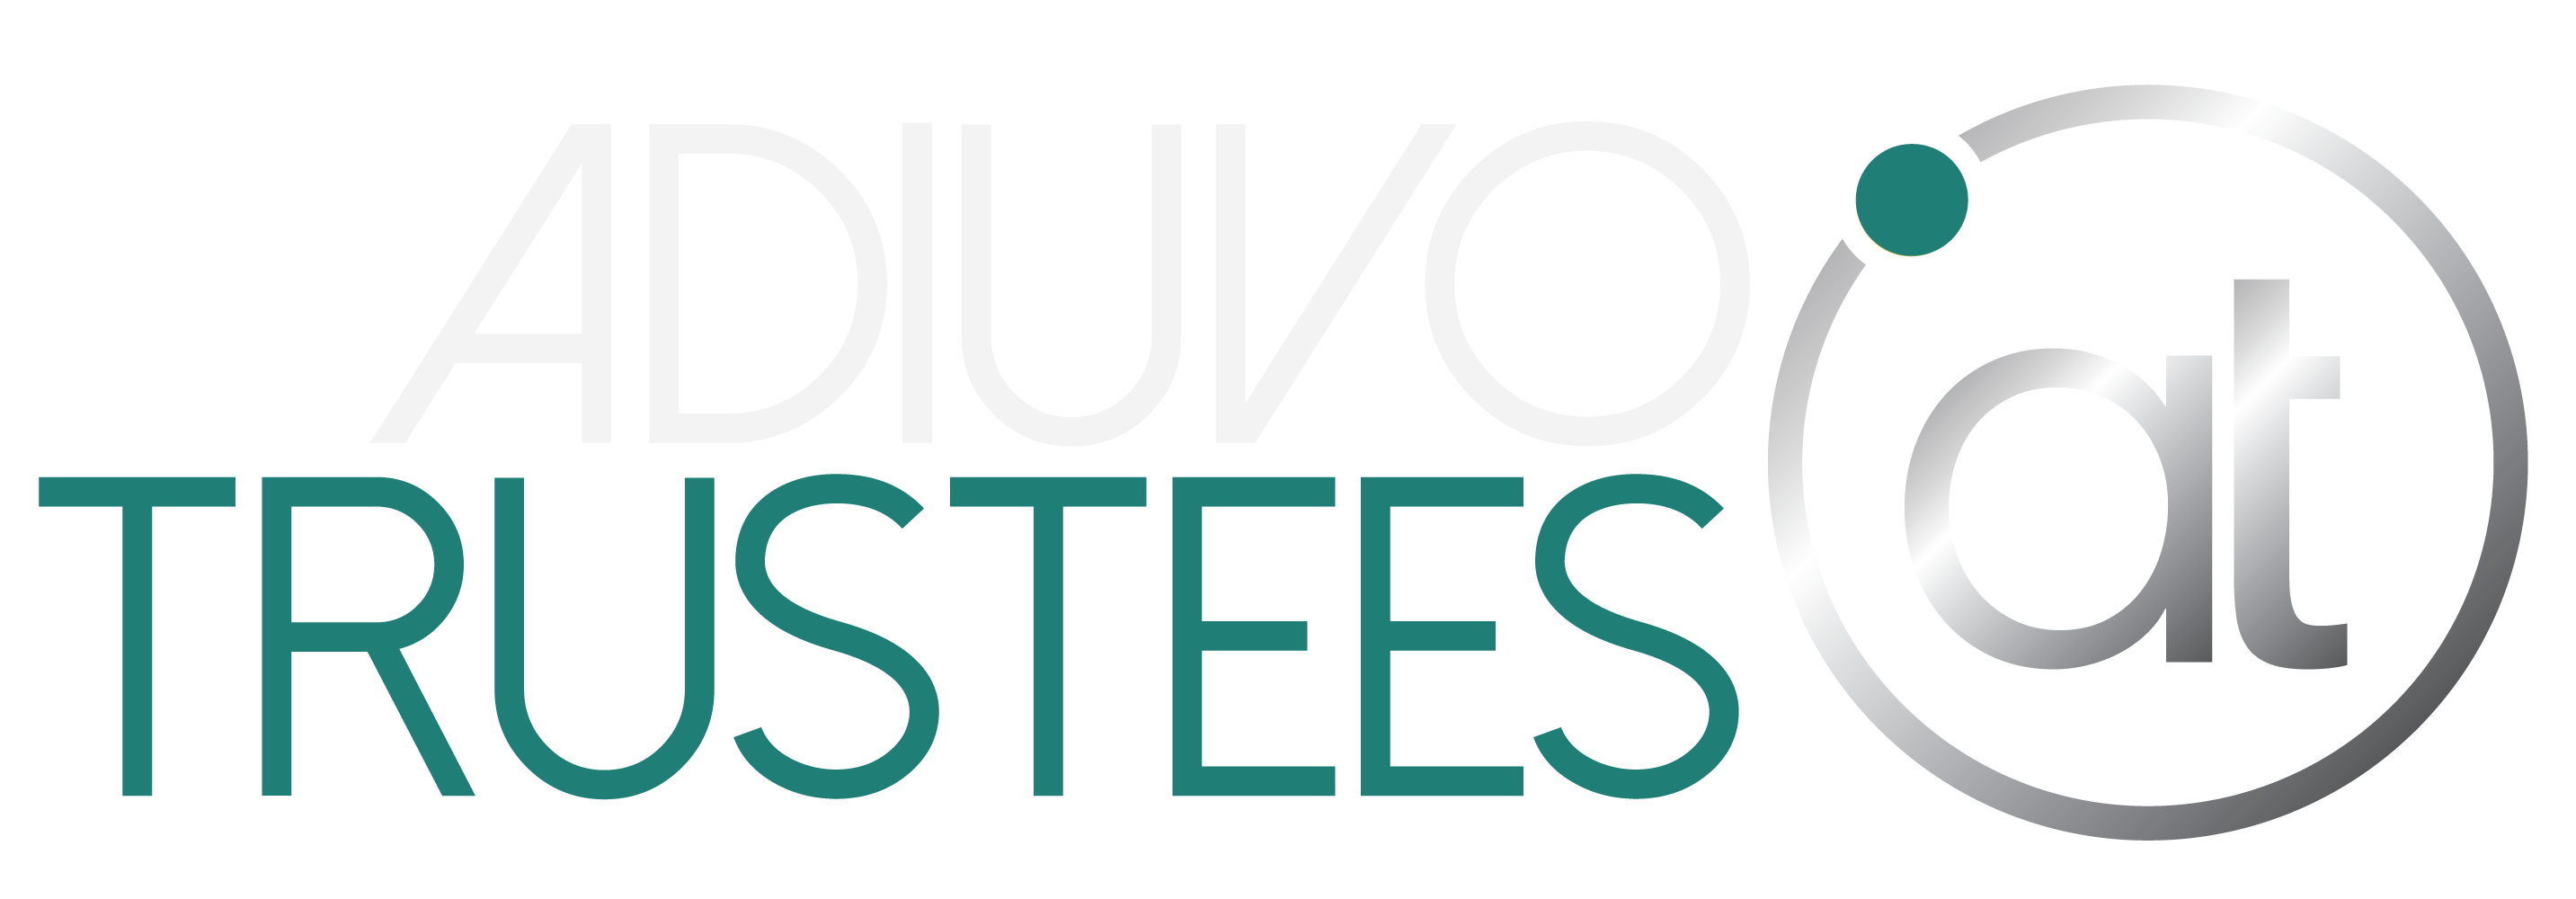 Adiuvo Trustees Ltd